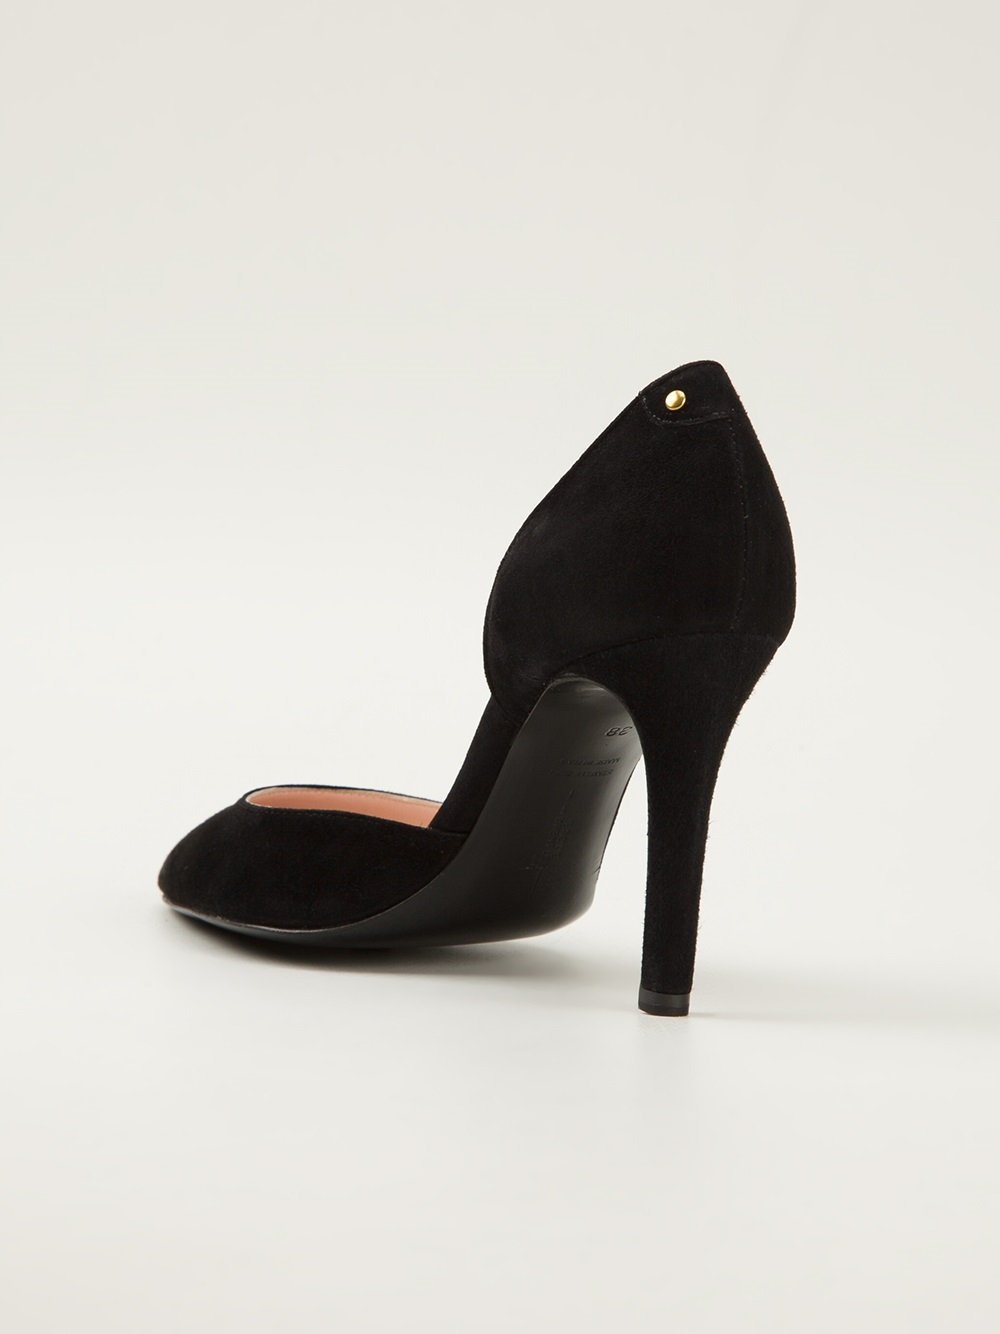 Versace Safety Pin Patent Pumps for Women | US Online Store